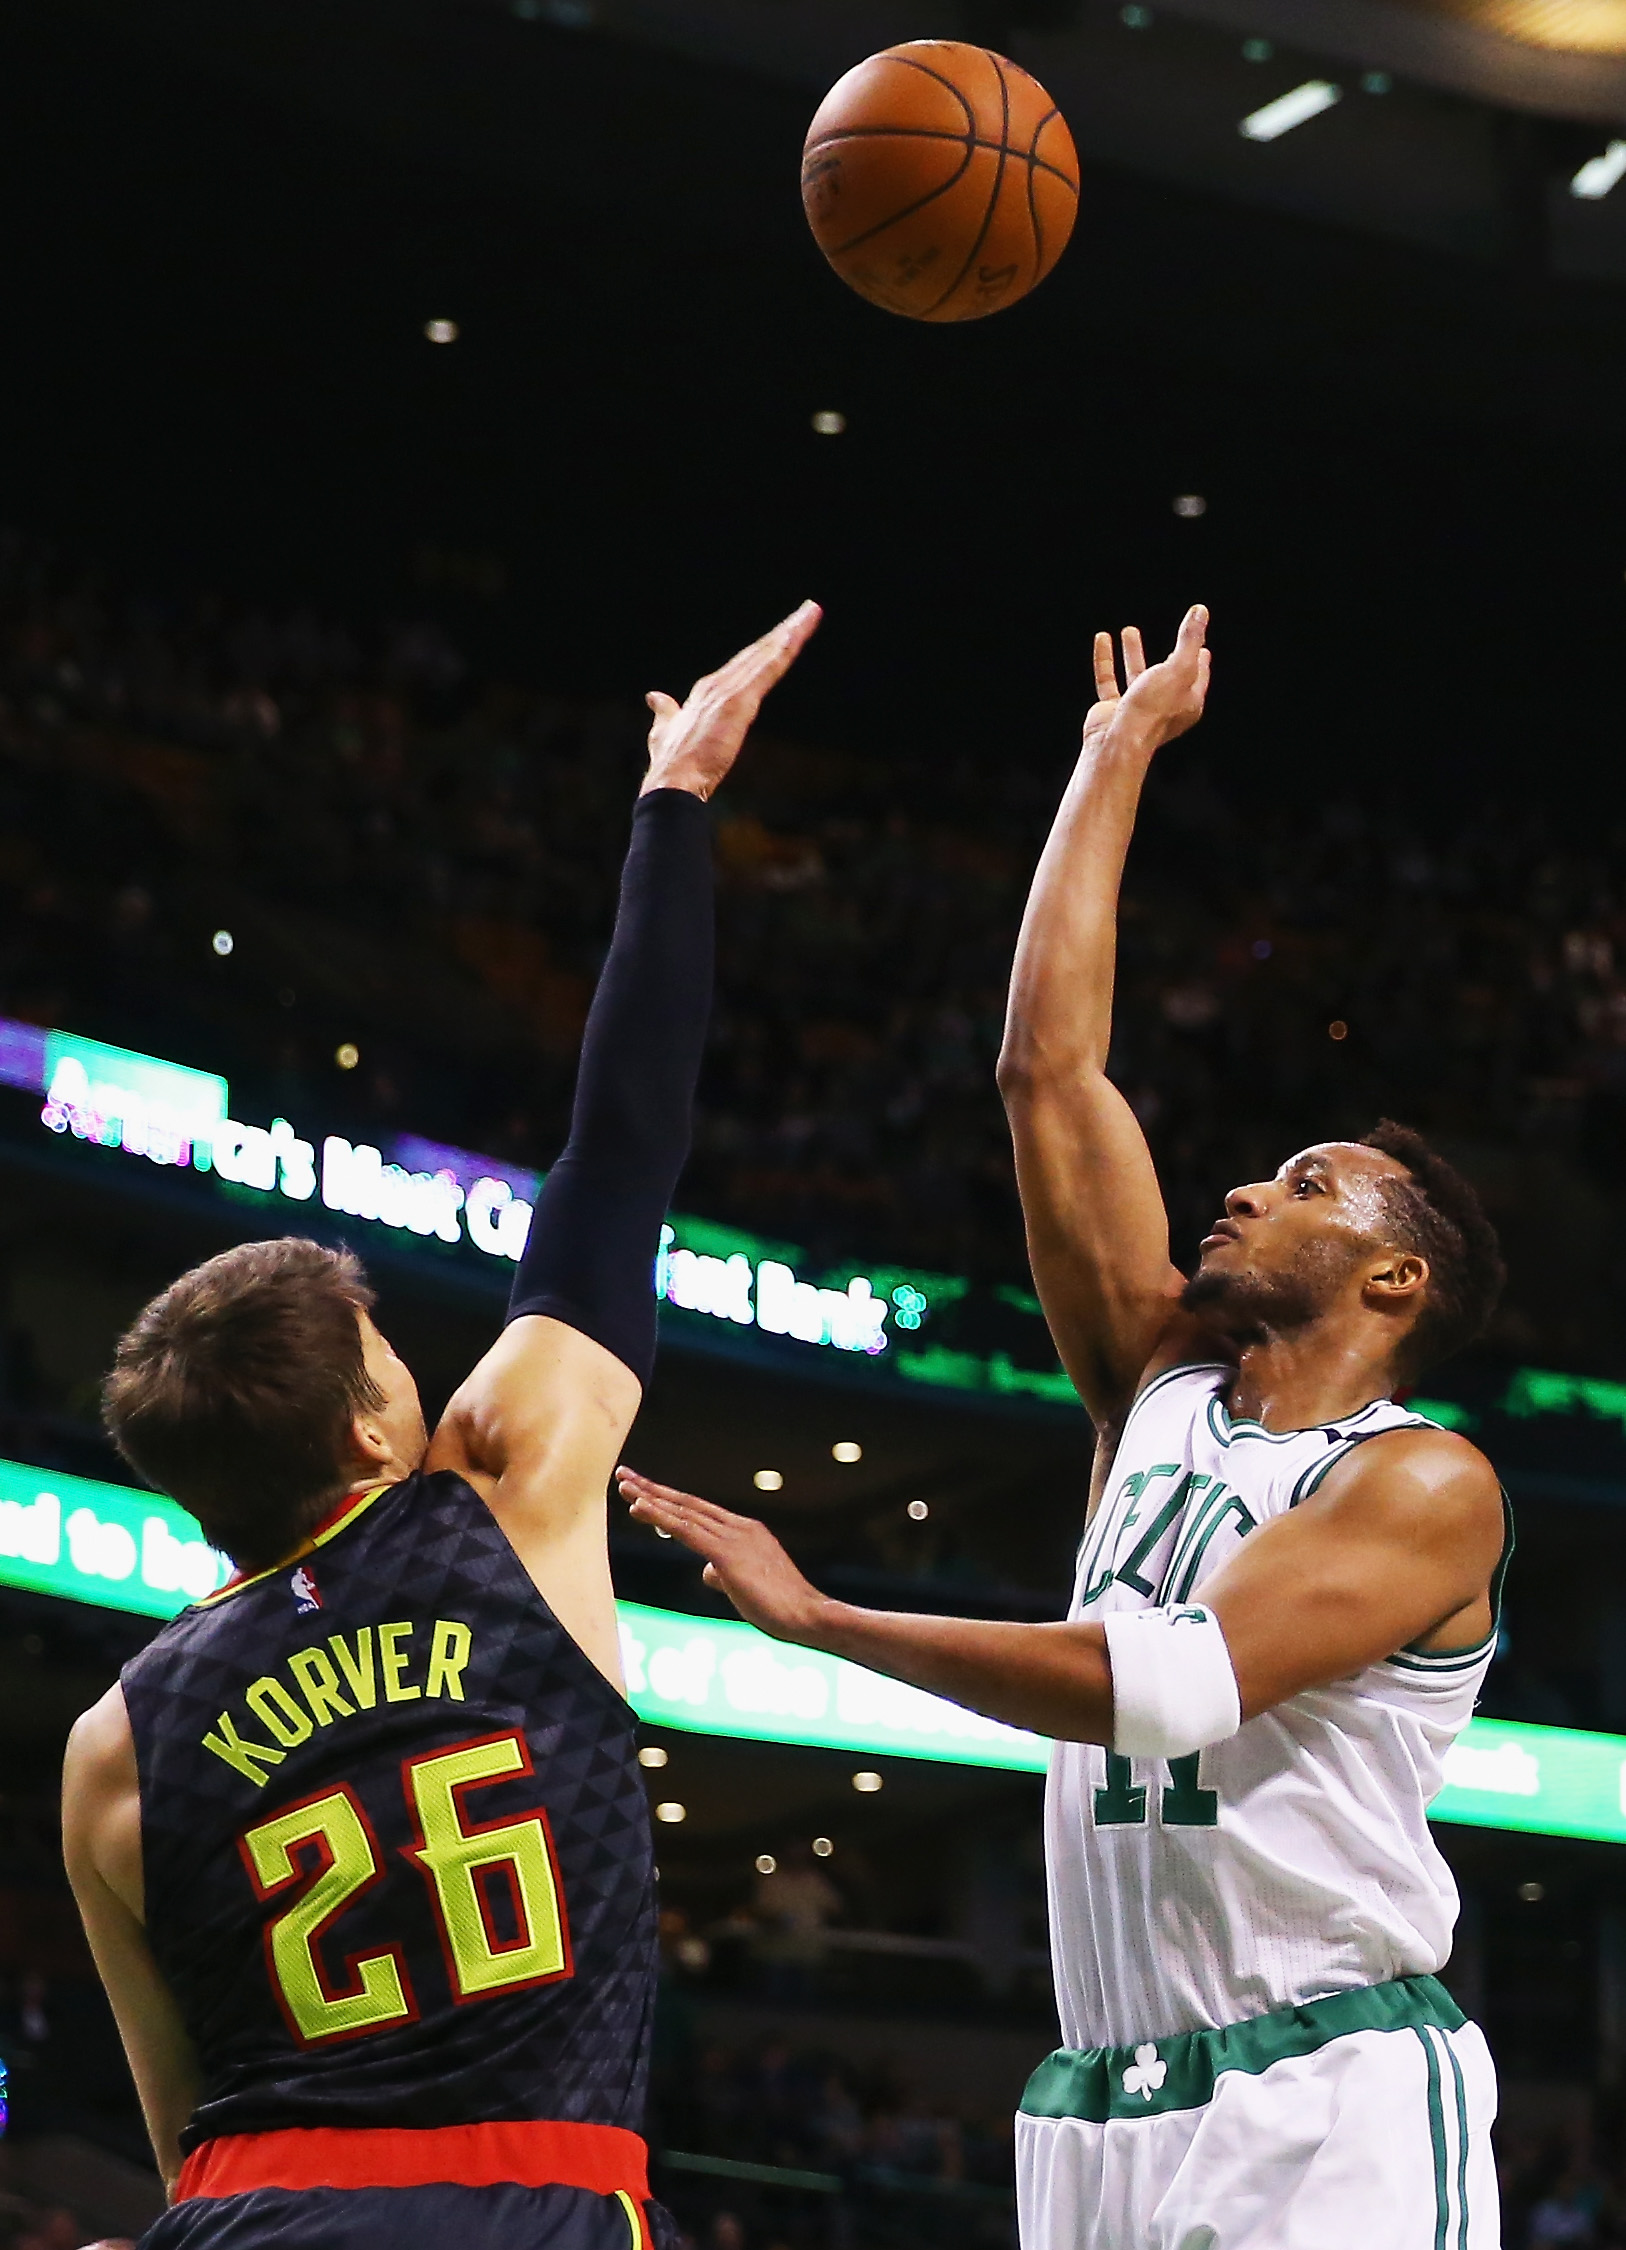 BOSTON, MA - DECEMBER 18:  Evan Turner #11 of the Boston Celtics takes a shot over Kyle Korver #26 of the Atlanta Hawks  during the second quarter at TD Garden on December 18, 2015 in Boston, Massachusetts.(Photo by Maddie Meyer/Getty Images)